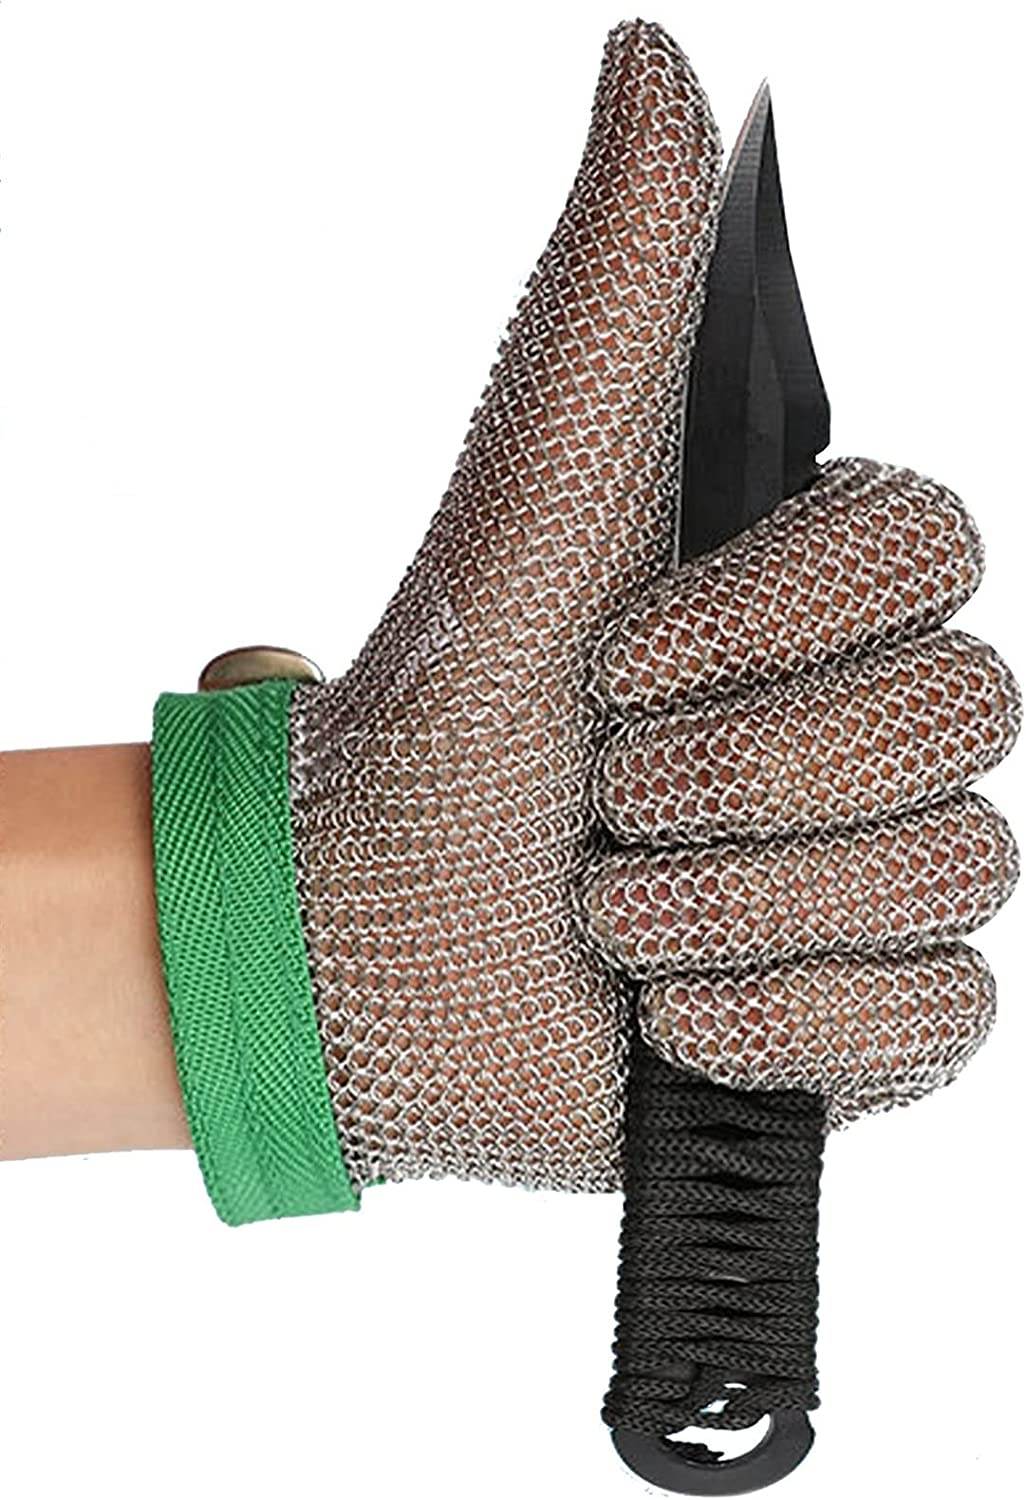 Anti Cut Glove 304 Popular brand Stainless Slaught Resistant Gloves Credence Steel